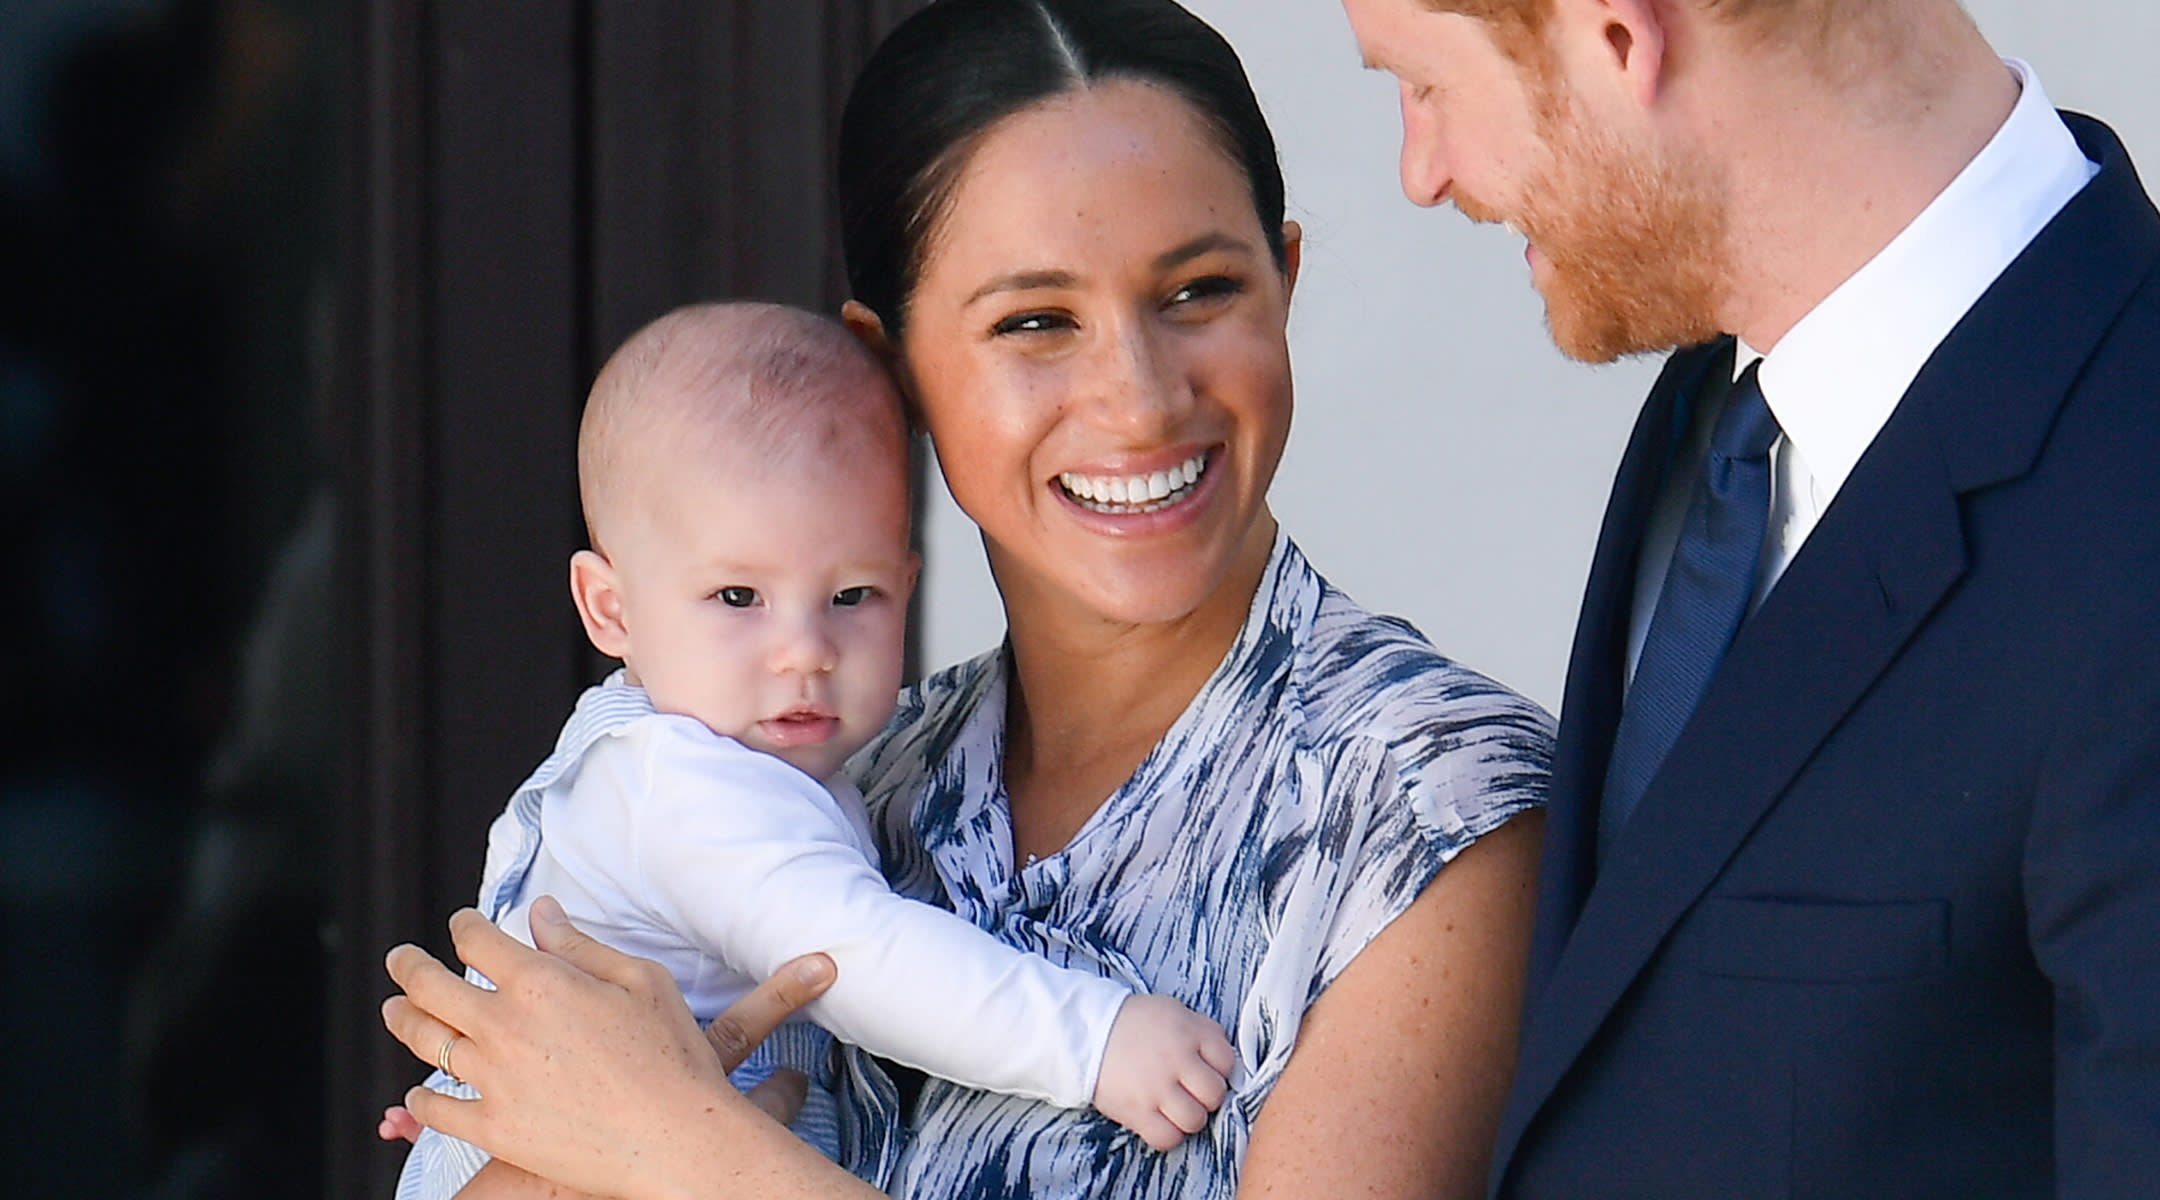 Meghan Markle Tearfully Admits She's Having a Hard Time as a New Mom